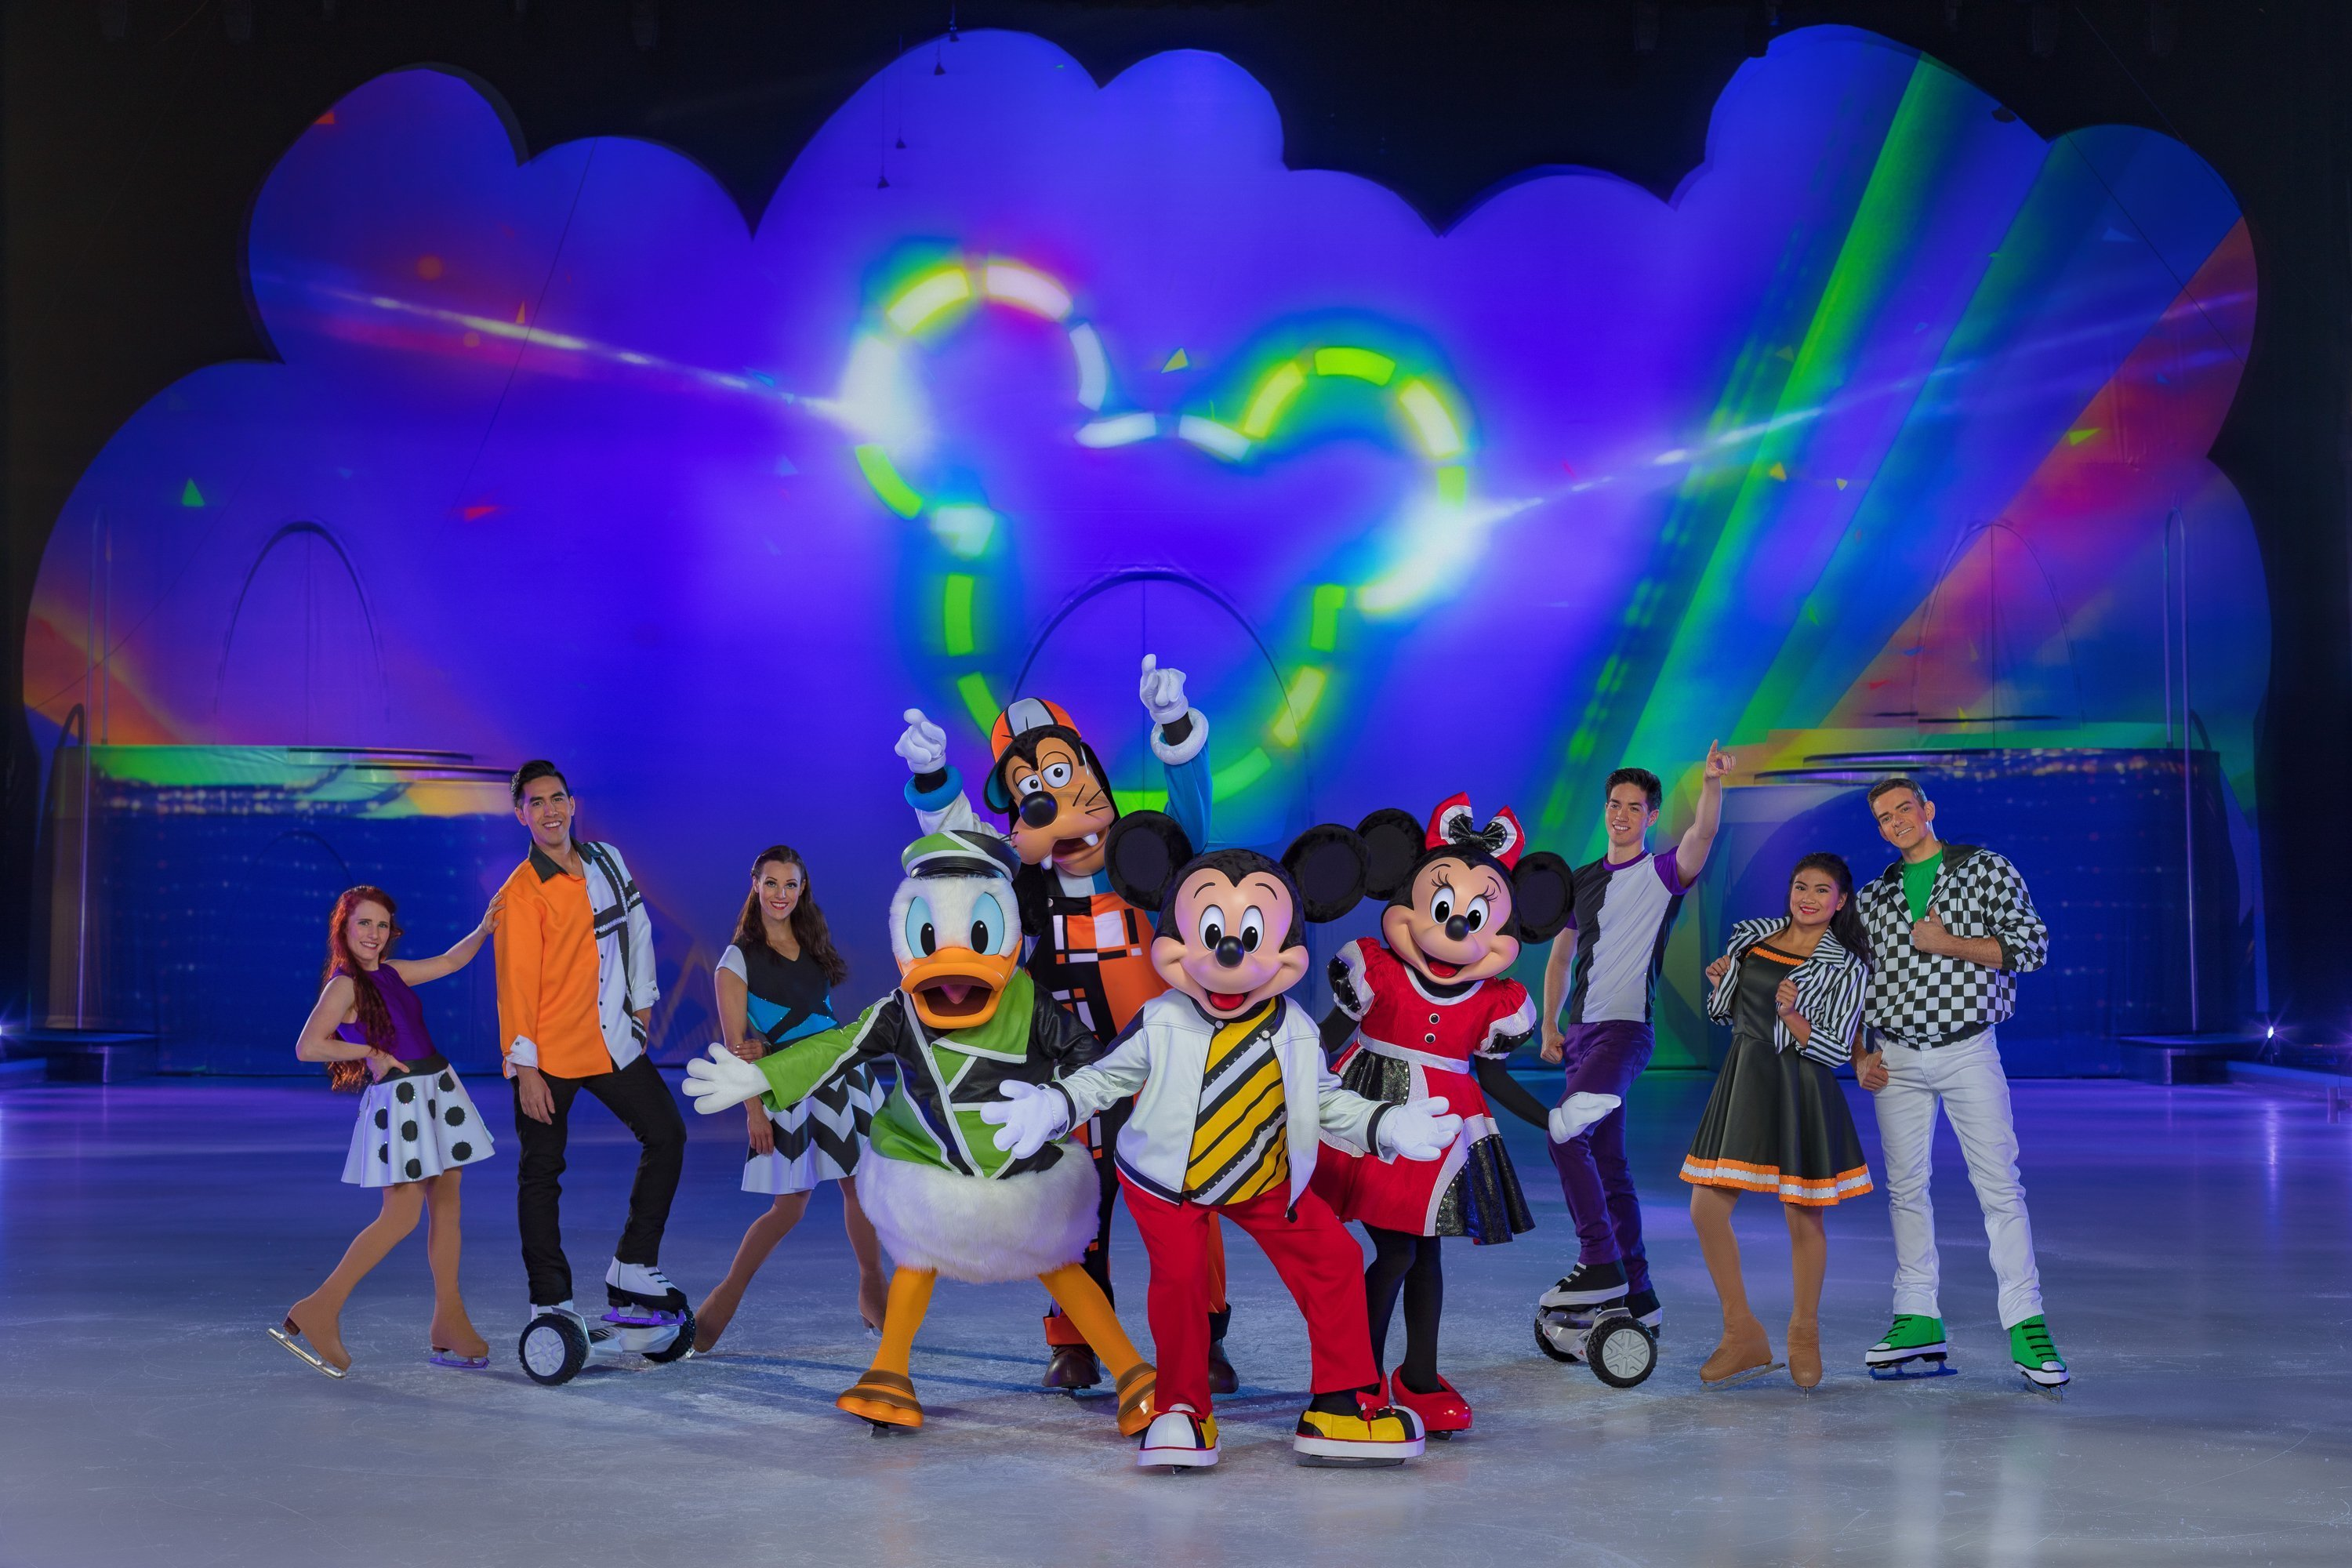 Mickey Disney On Ice Cast standing in front of Mickey Mouse light up stage